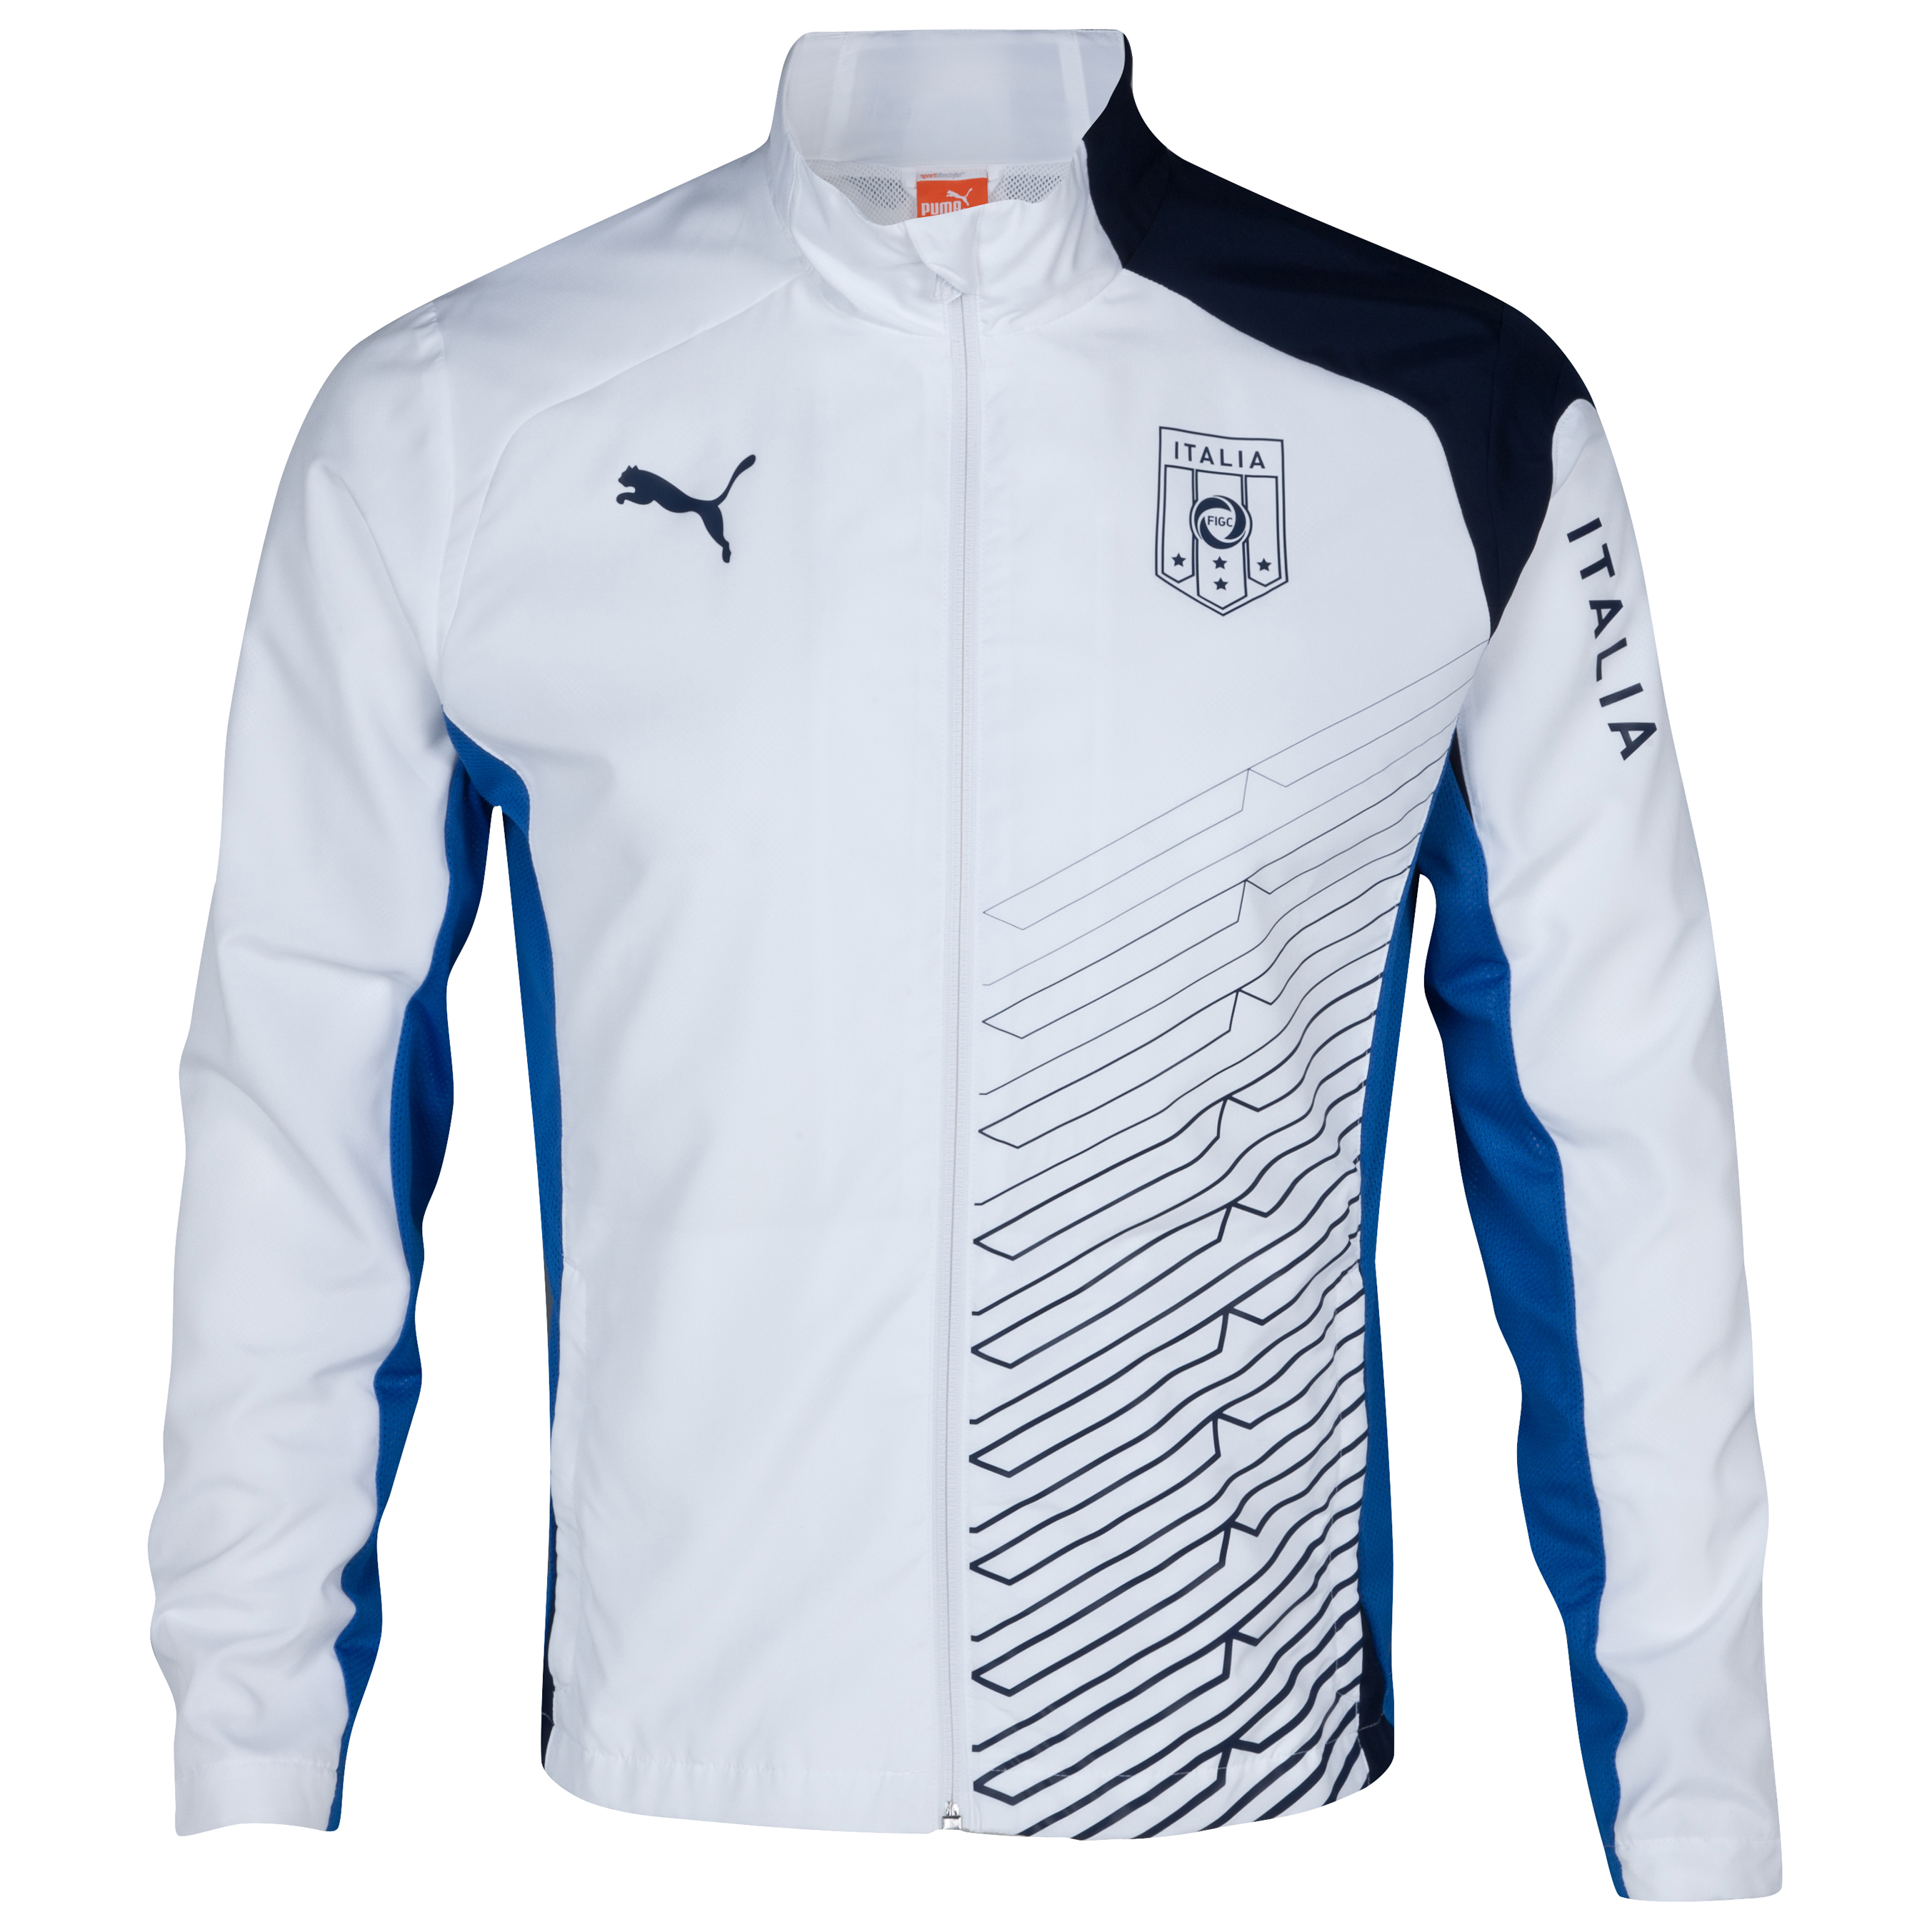 Puma Italy Double Cloth Woven Jacket - Navy/White